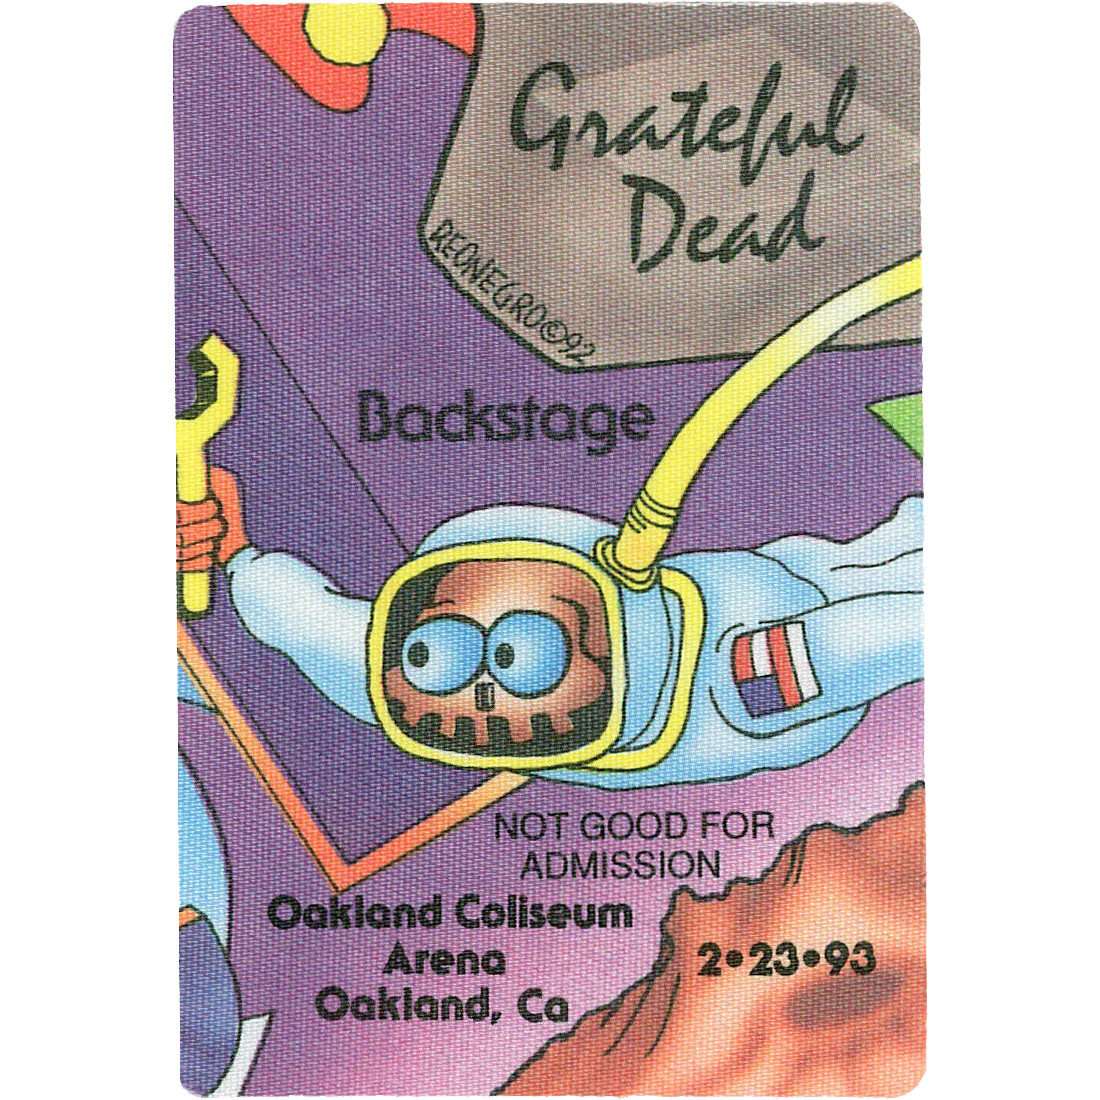 Grateful Dead 1993 02-23 Backstage Pass